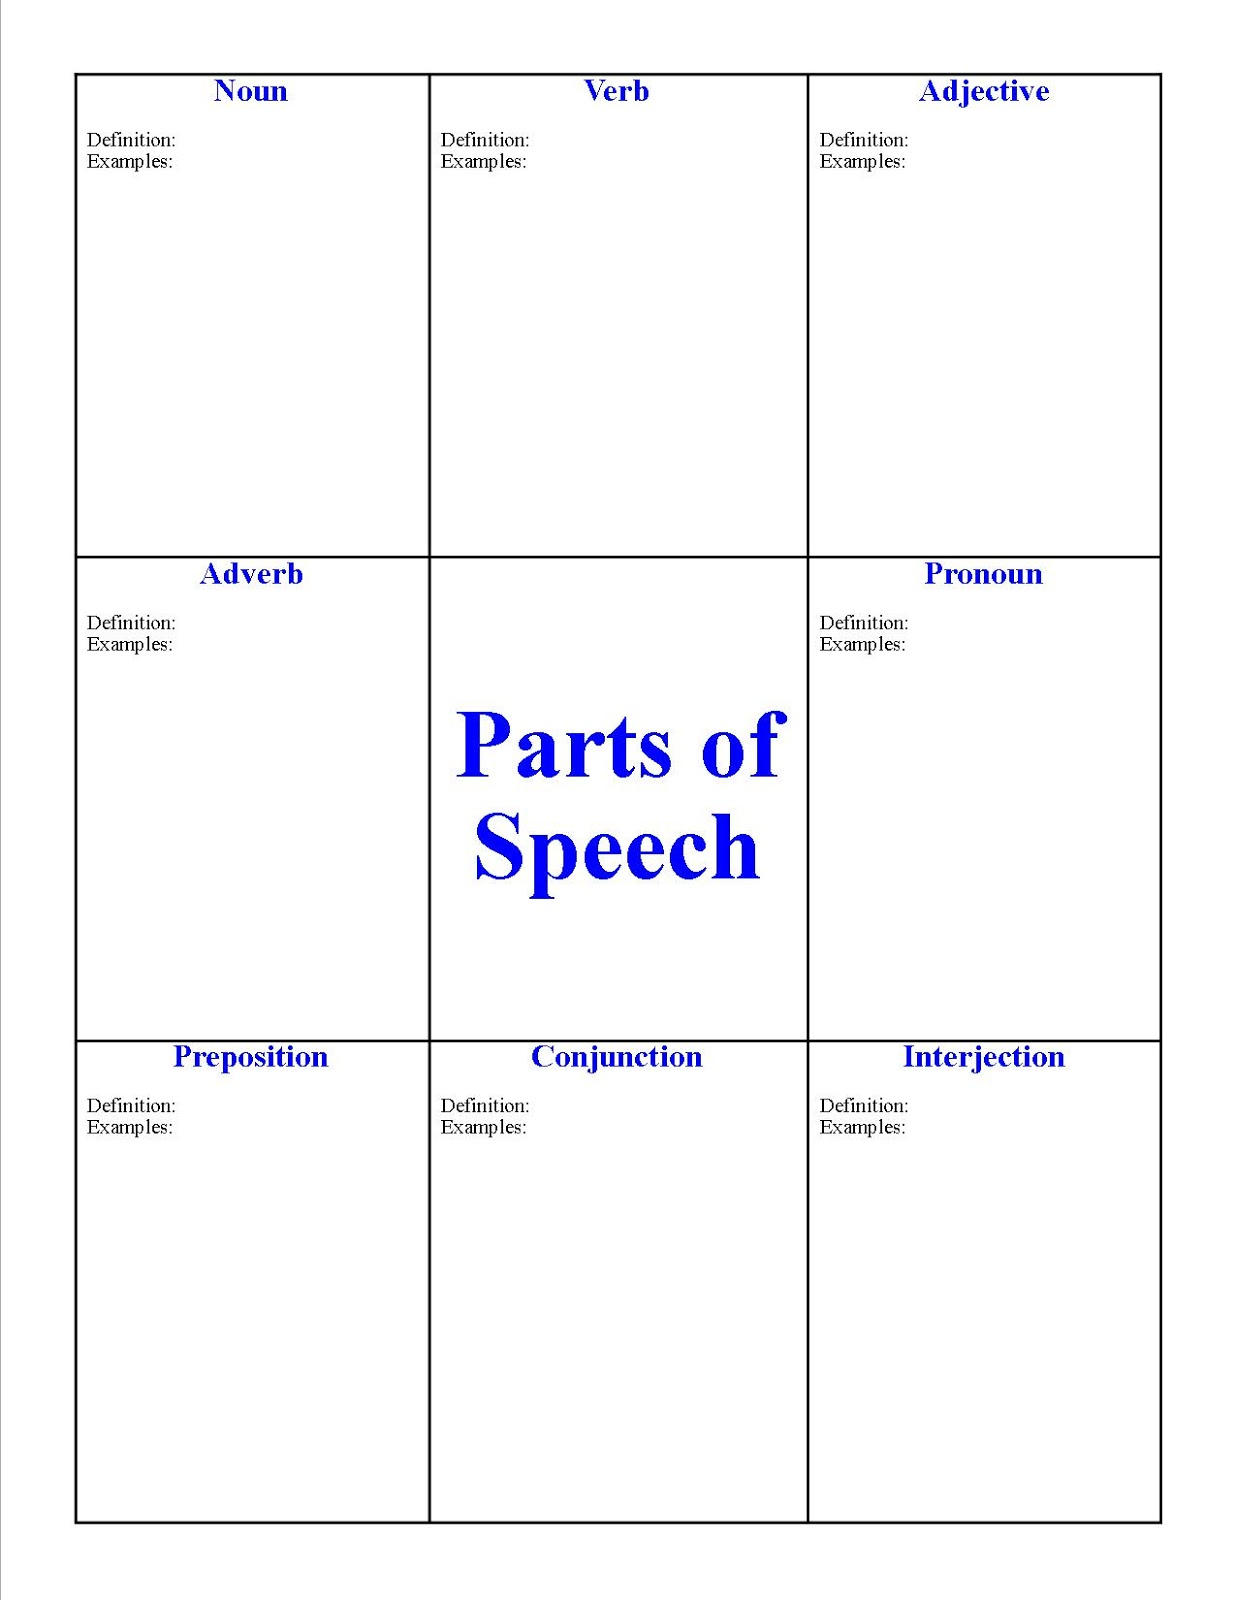 Worksheets 8th Grade English Grammar Worksheets homeschooling in 8th grade english grammar that worksheet is for the first two days after my son will have short lessons mondays through thursdays we are going back to the